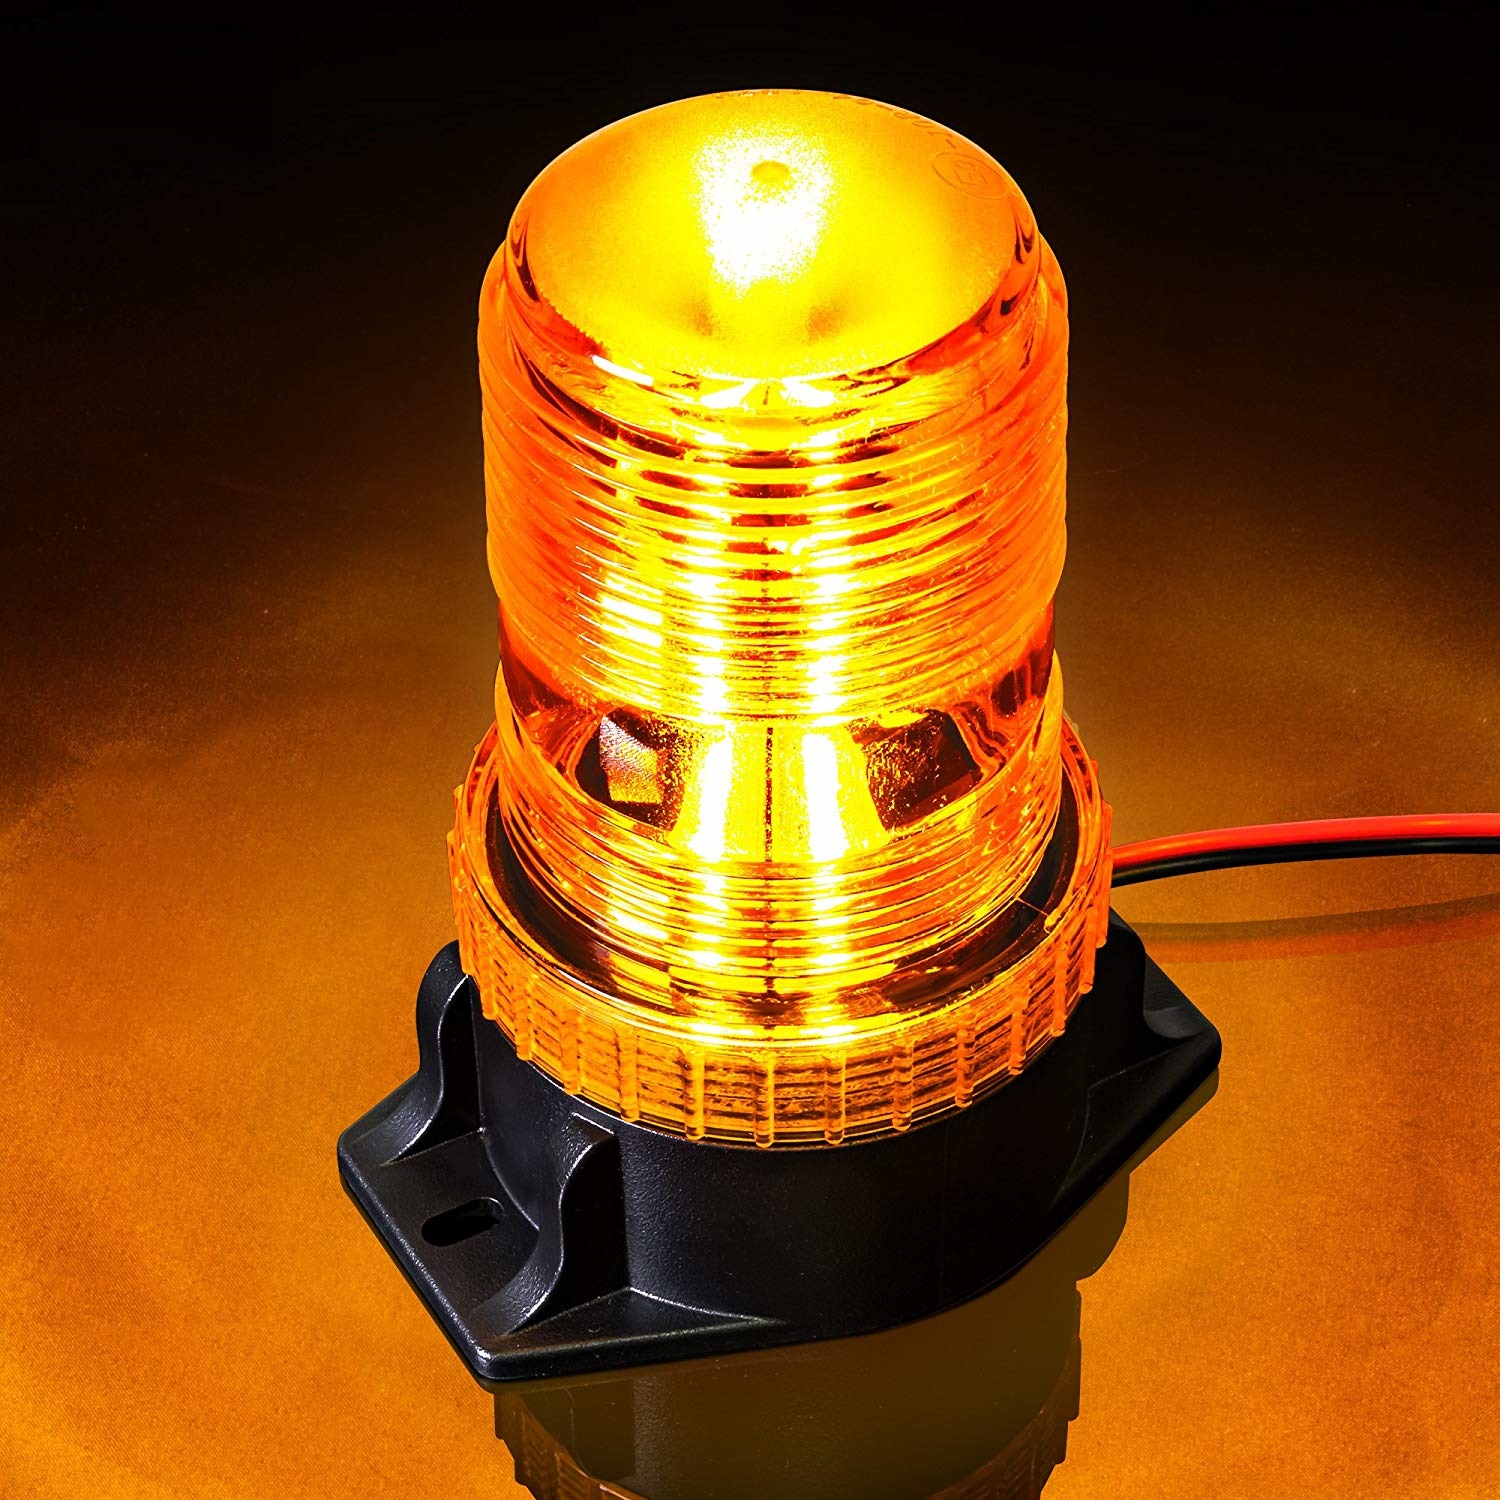 30 LED Amber/Yellow 15W Emergency Warning Flashing Safety Strobe Beacon Light for Forklift Truck Tra